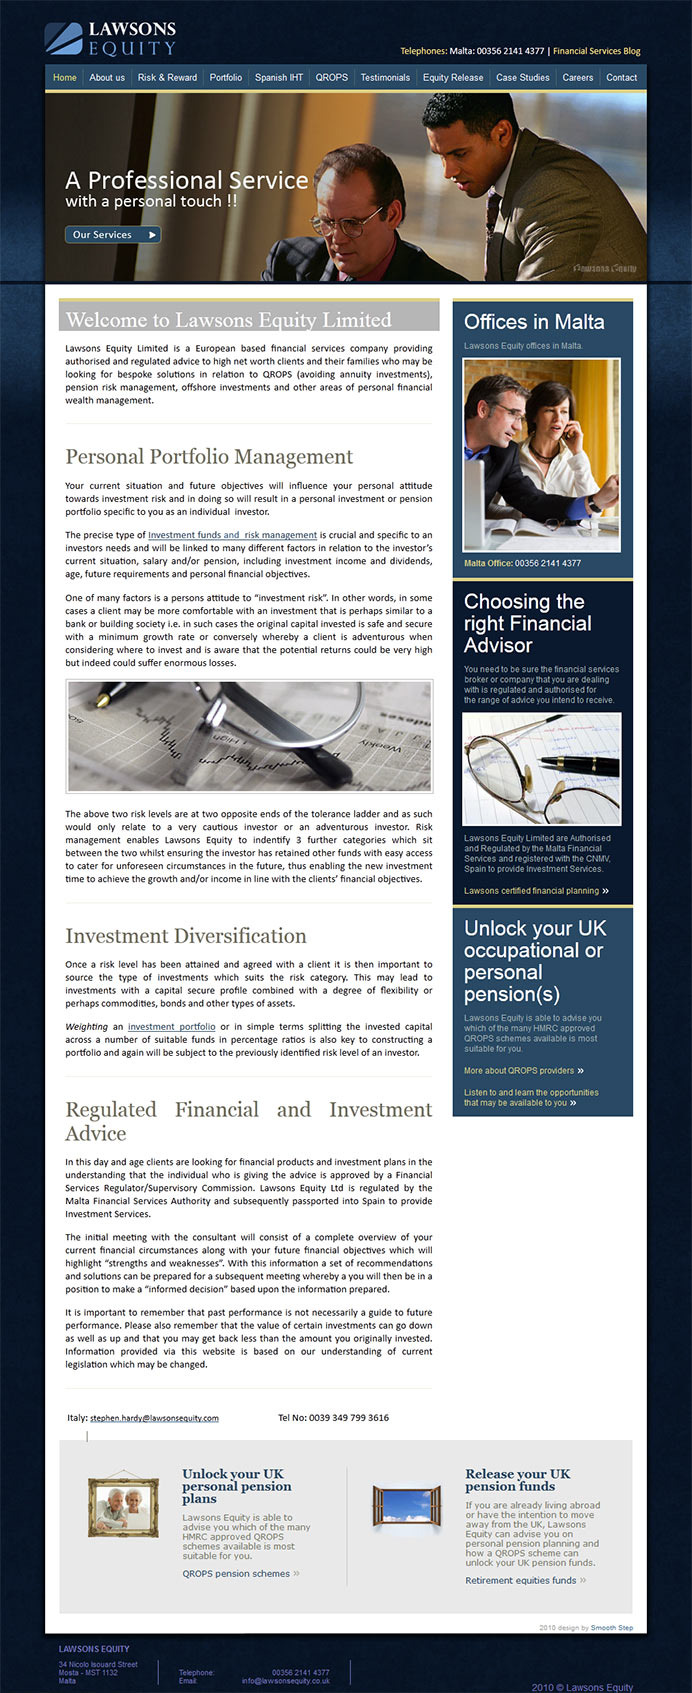 Lawsons financial website design